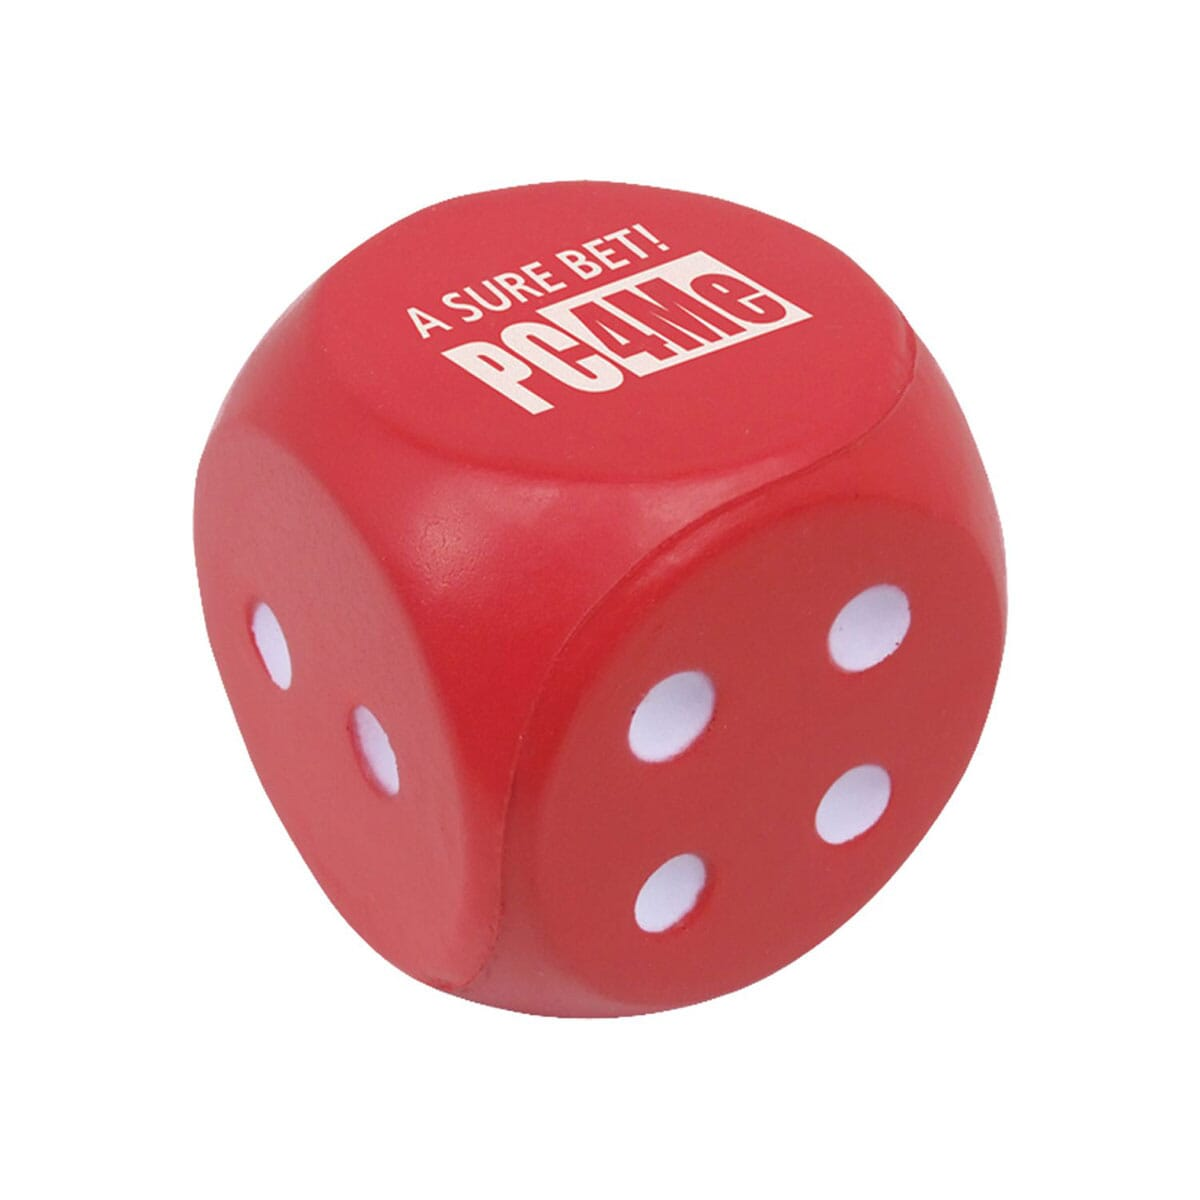 Red stress reliever with white logo shaped like a board game die